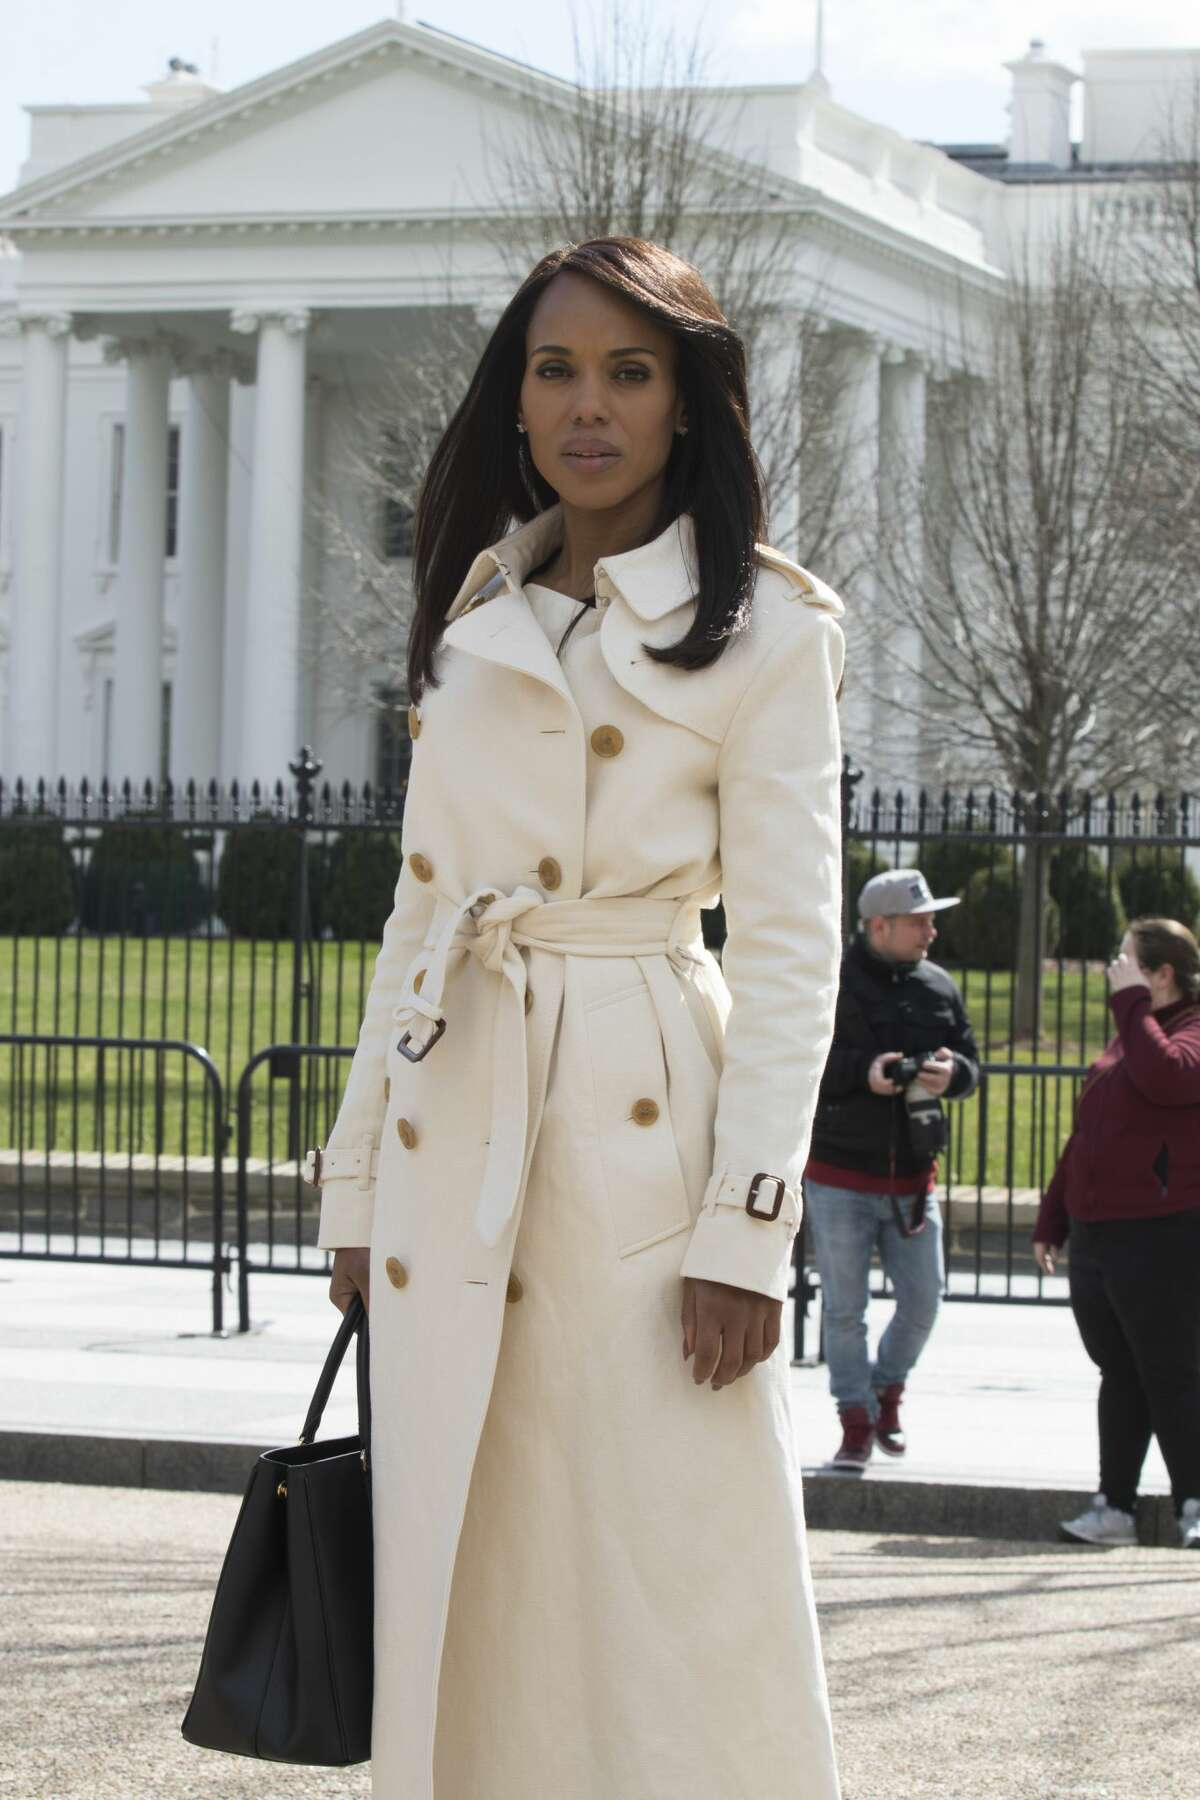 Kerry Washington in Scandal, on ABC.